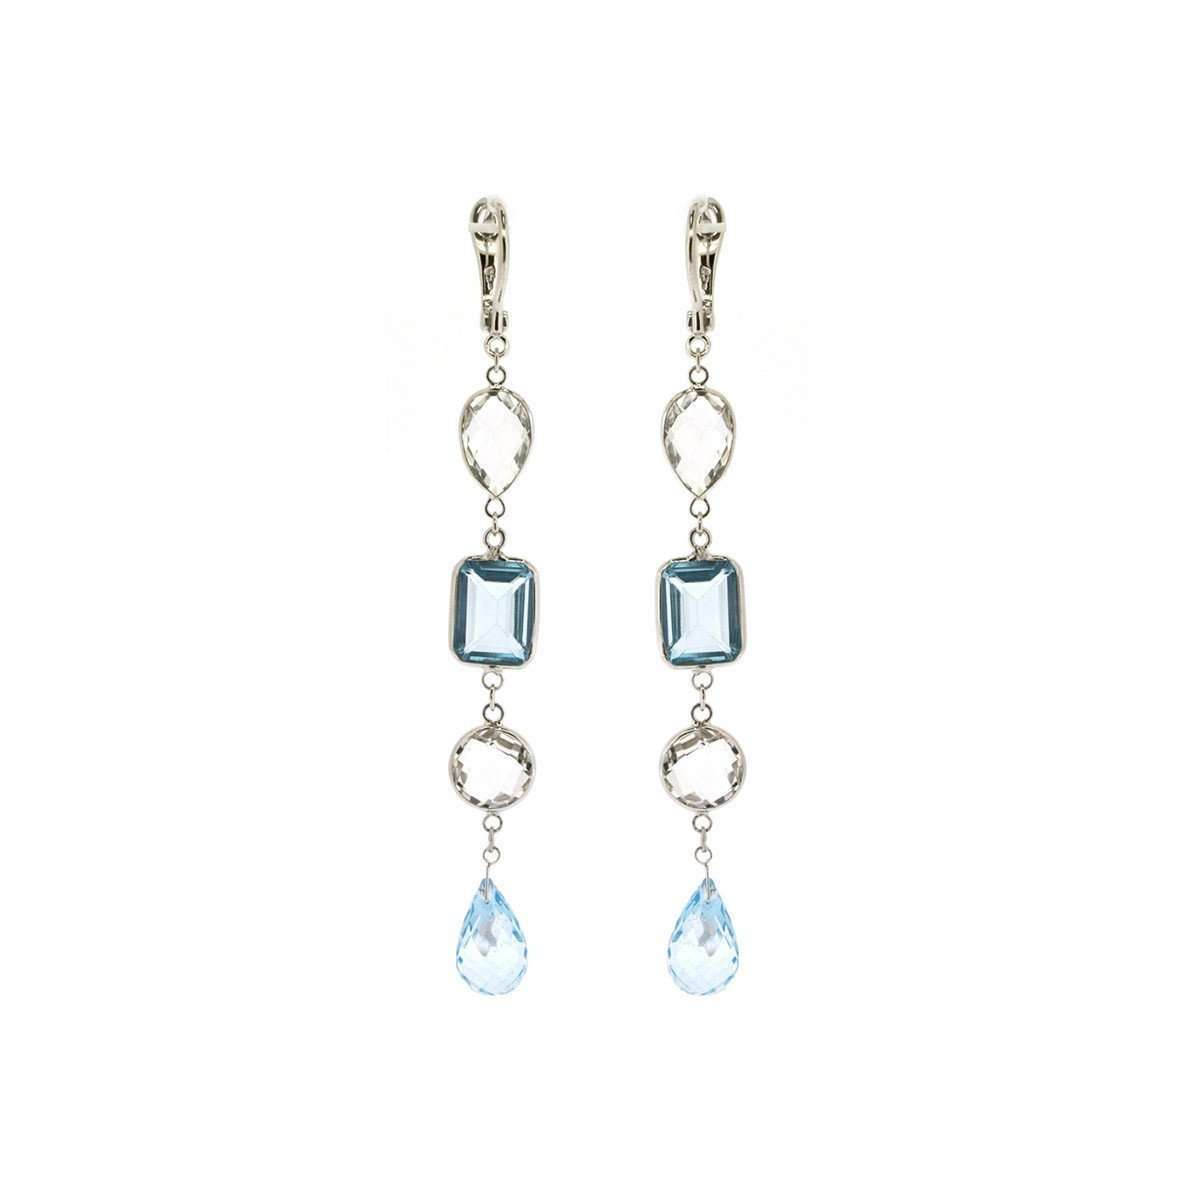 18kt White Gold Blue and White Topaz Drop Earrings-Marmalade Fine Jewellery-JewelStreet US